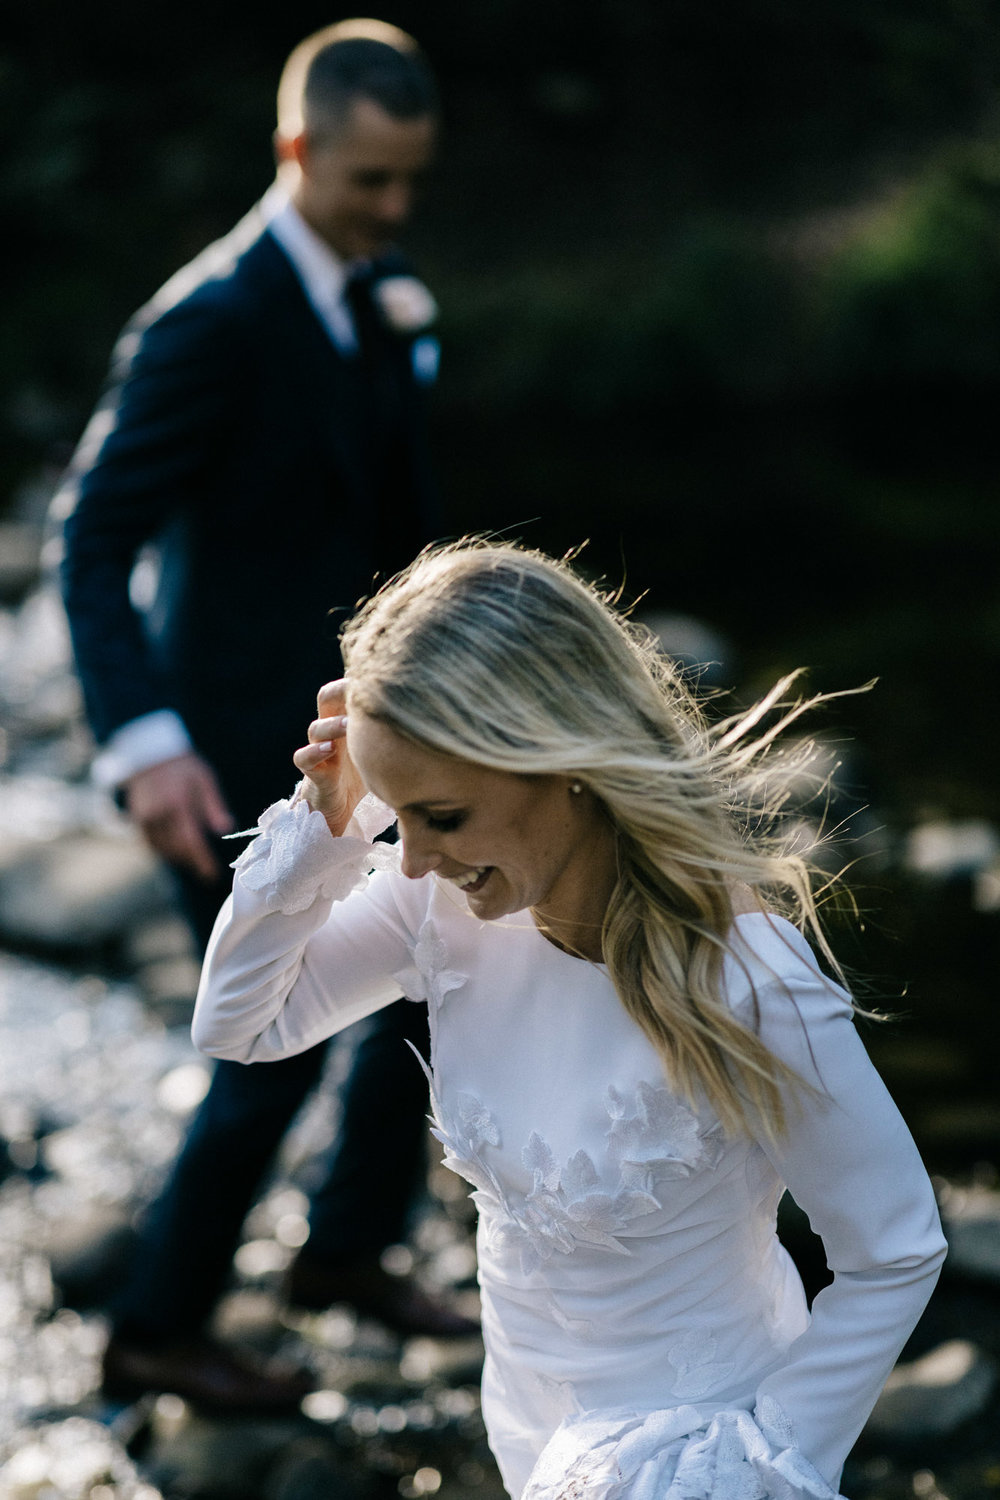 Marnie Hawson, ethical wedding photographer for Jason Hewitt.